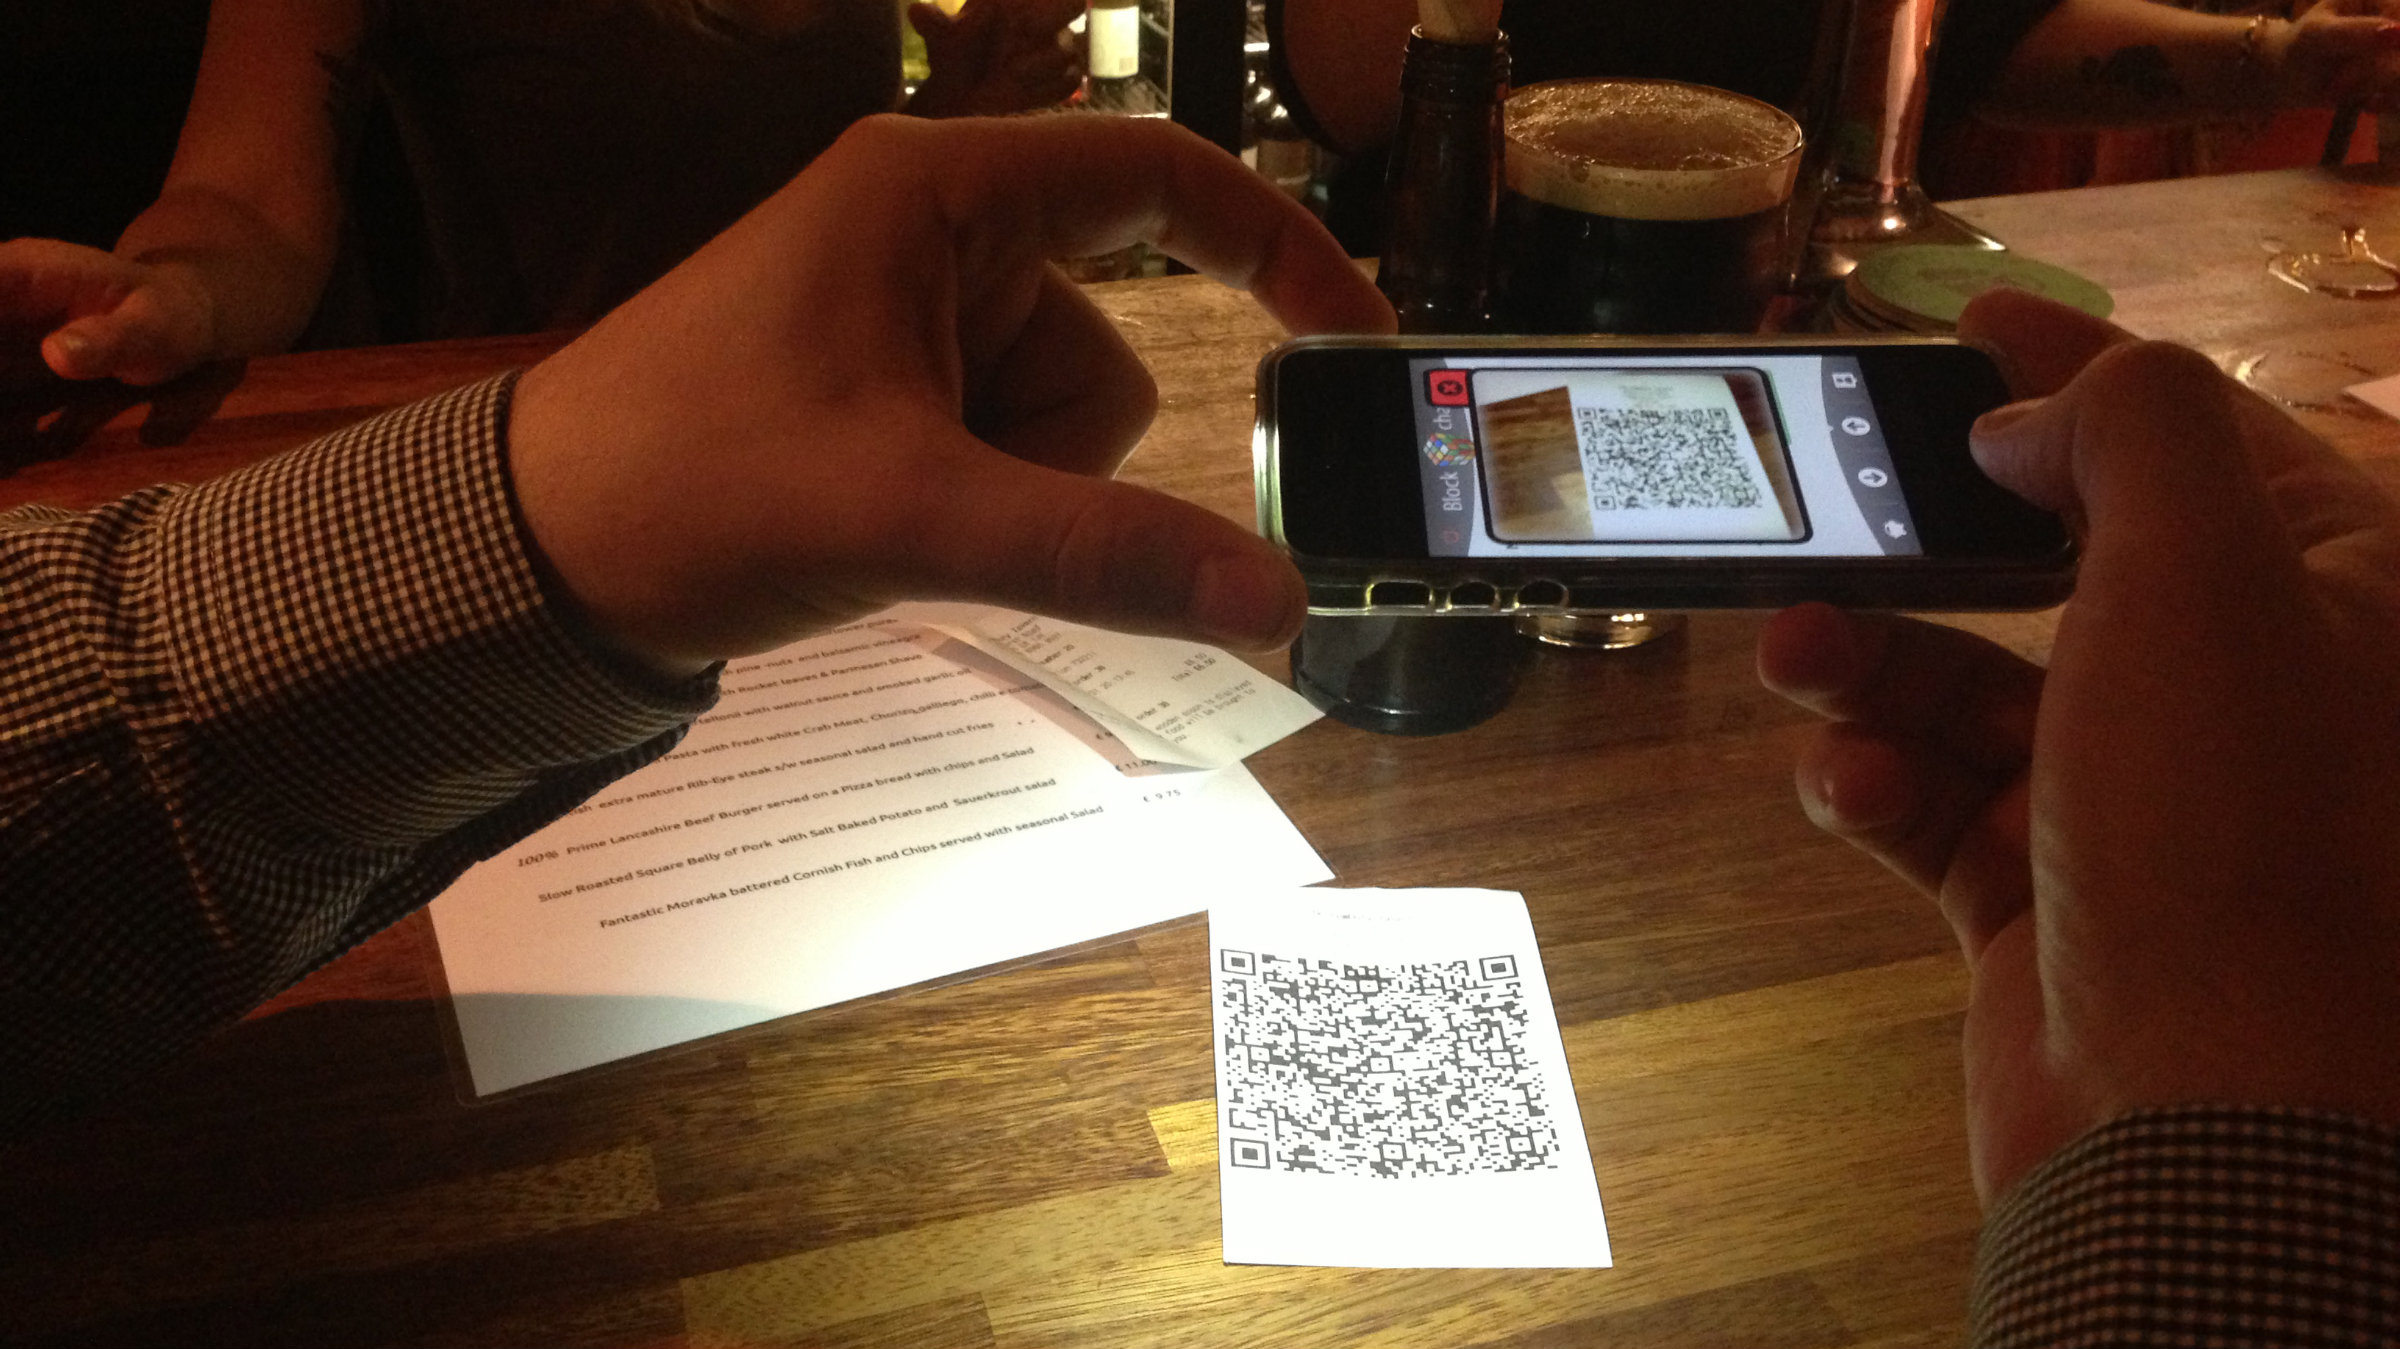 Paying for a pint with Bitcoin at the Pembury Tavern in east London.